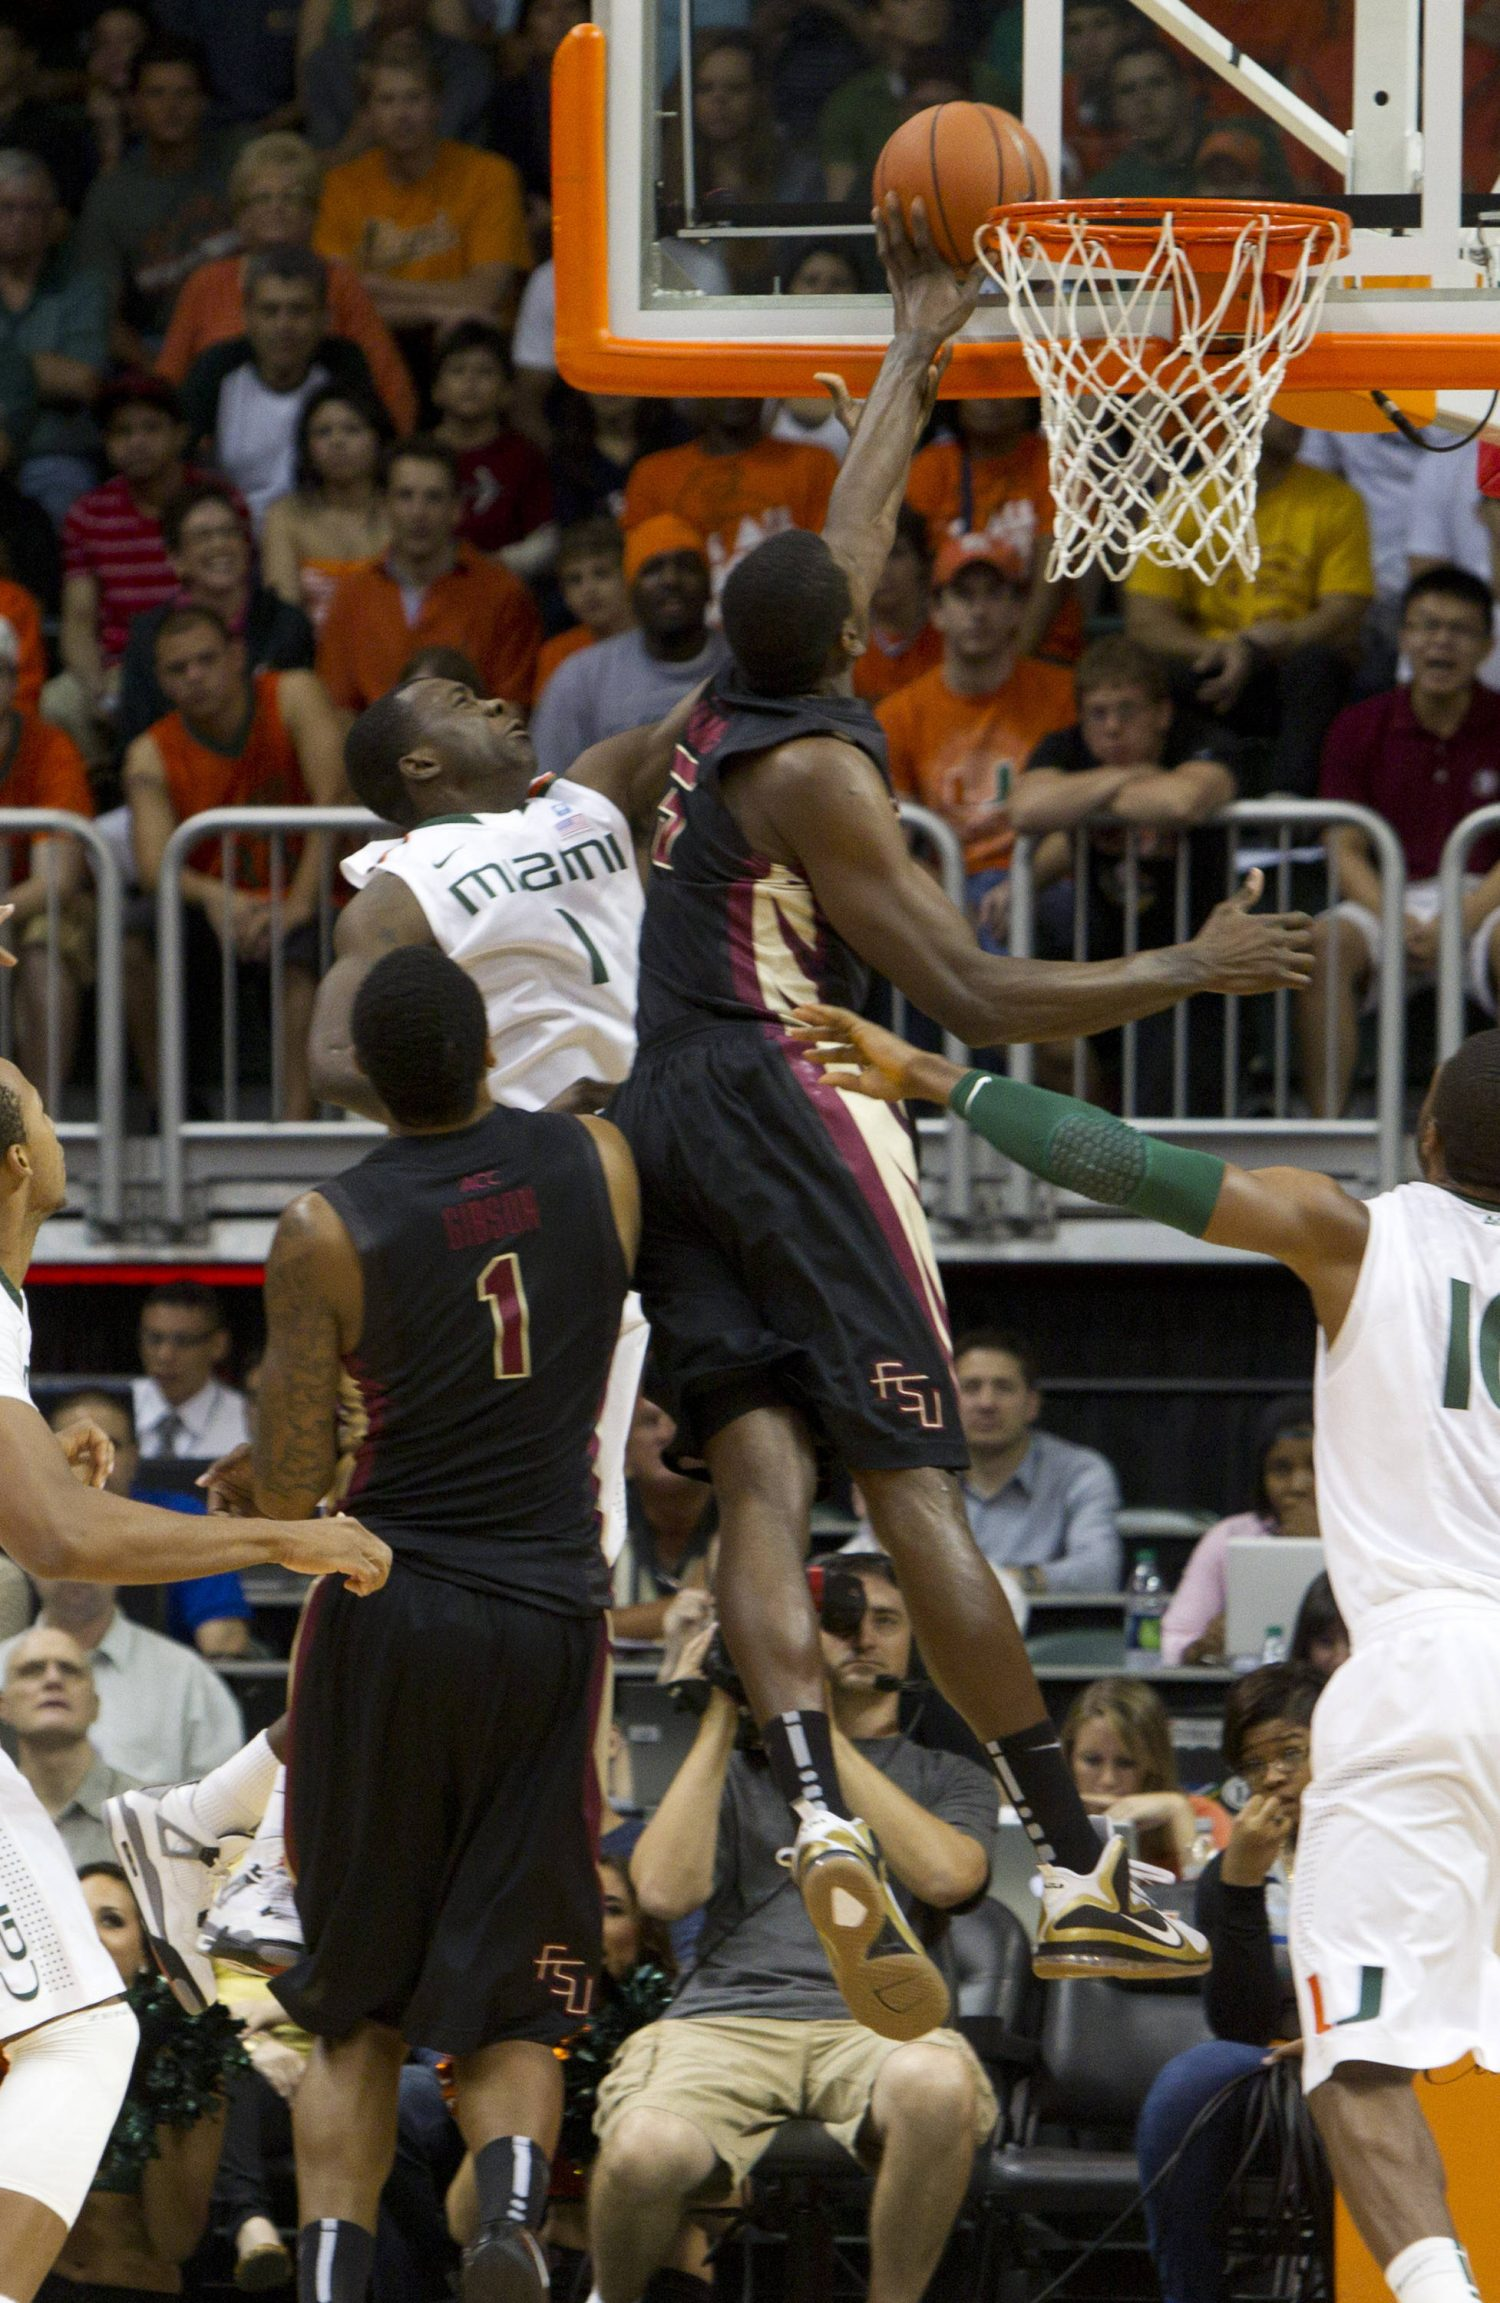 Florida State's Bernard James (5) blocks a shot by Miami's Durand Scott (1) during the first half of an NCAA college basketball game in Coral Gables, Fla., Sunday, Feb. 26, 2012. (AP Photo/J Pat Carter)